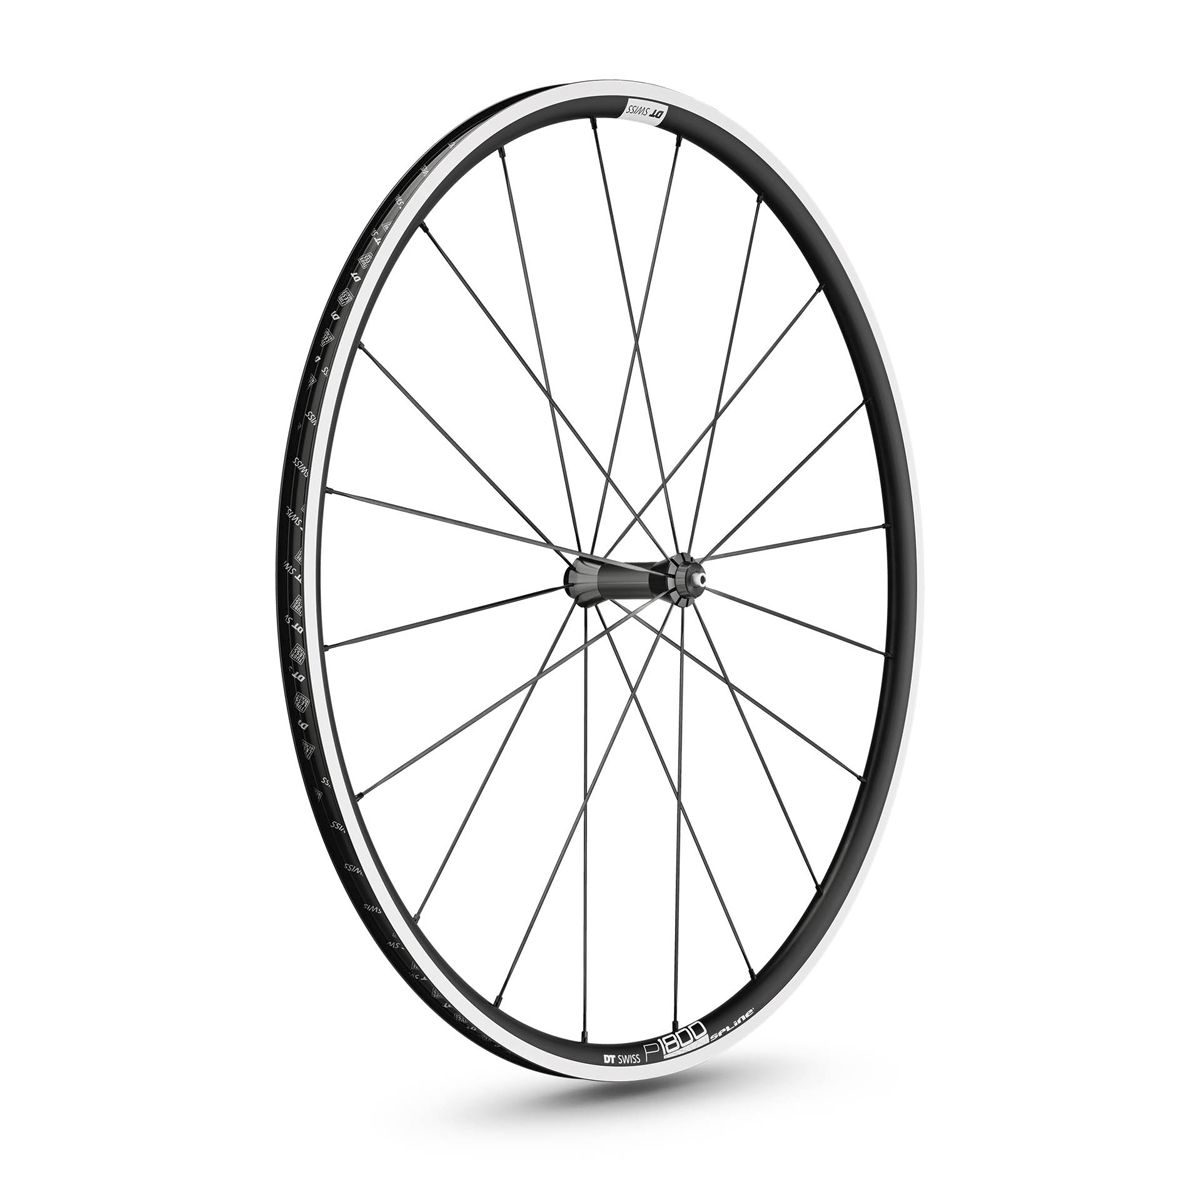 P 1800 Spline 23 road front wheel 28